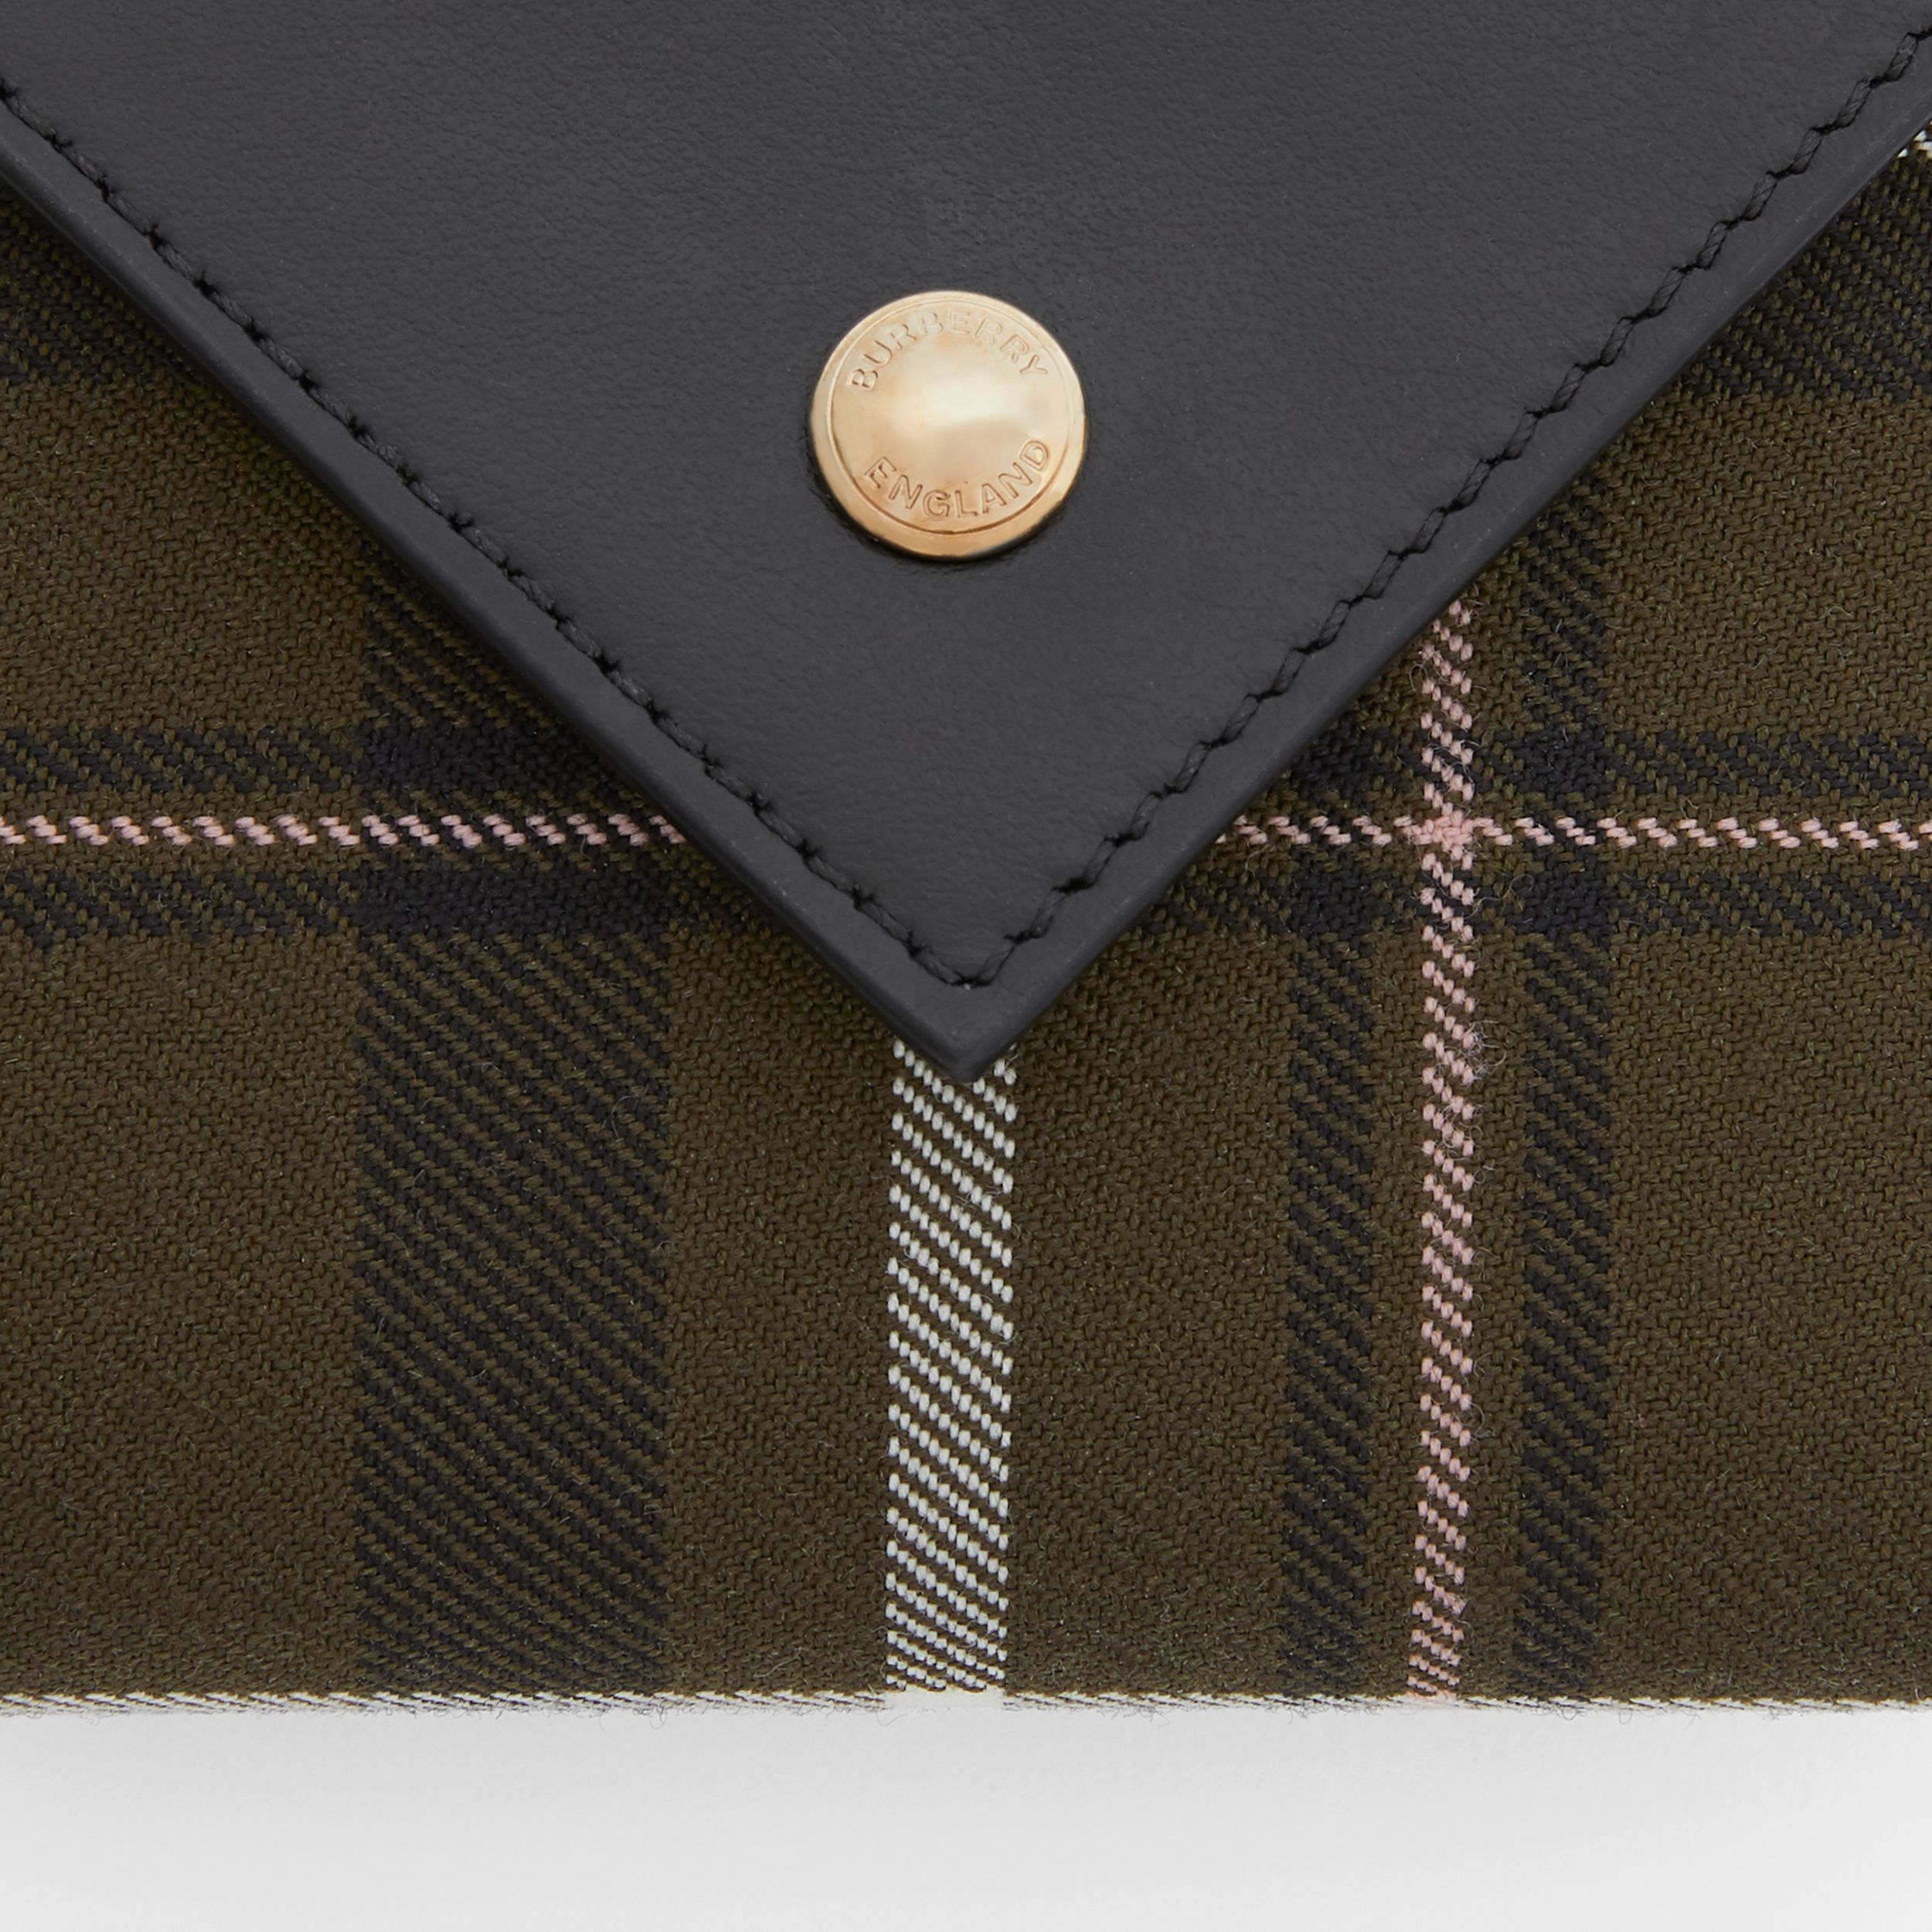 Tartan Wool and Leather Folding Wallet in Dark Green - Women | Burberry Australia - 2